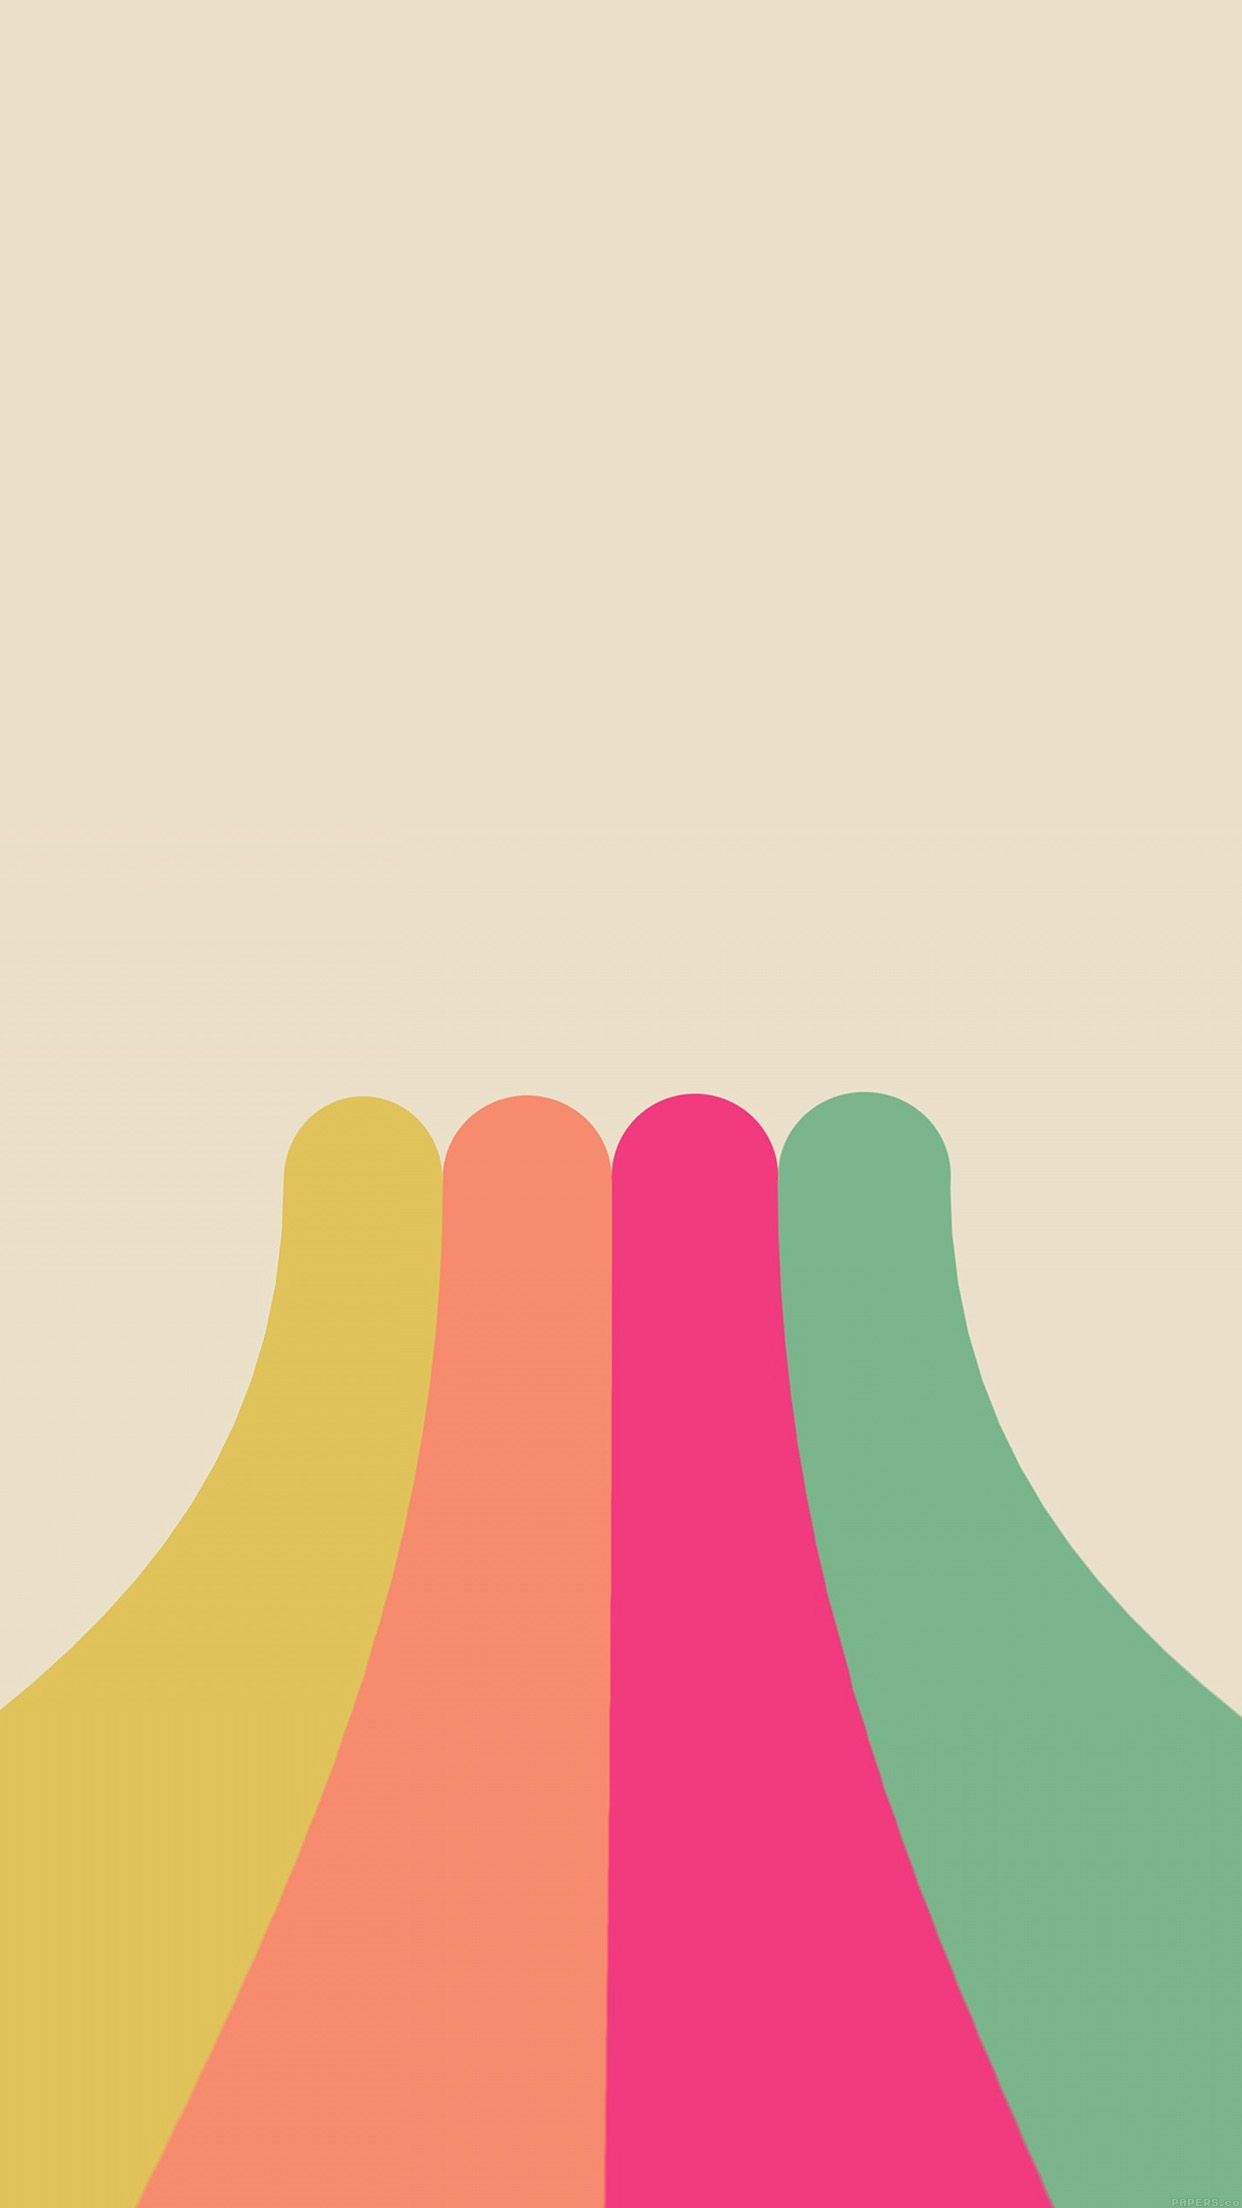 Cute Bikes Wallpapers Rainbow Simple Minimal Abstract Pattern Android Wallpaper